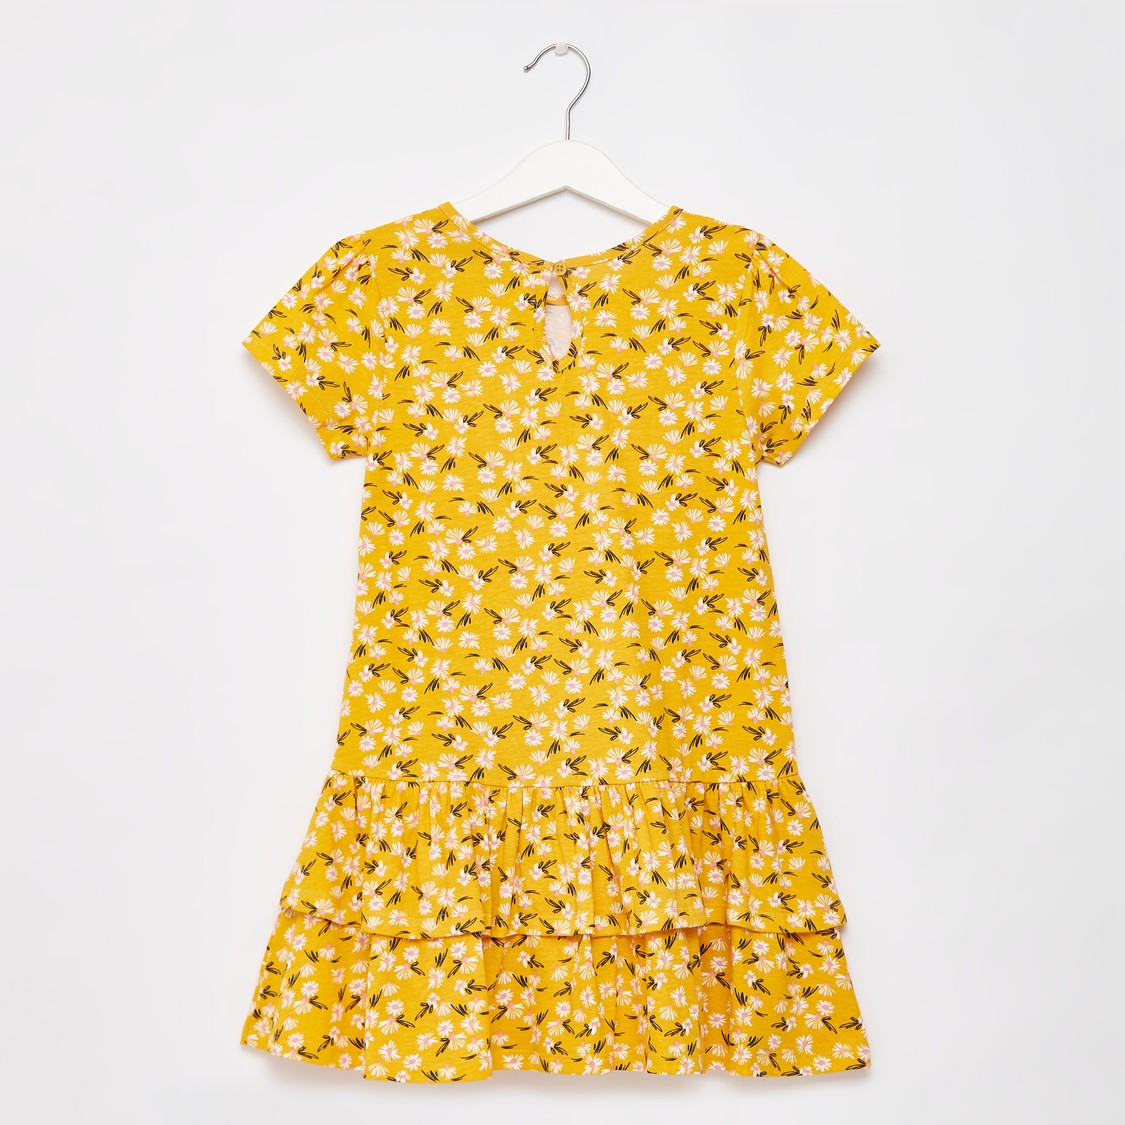 Floral Print Knee Length Dress with Round Neck and Cap Sleeves